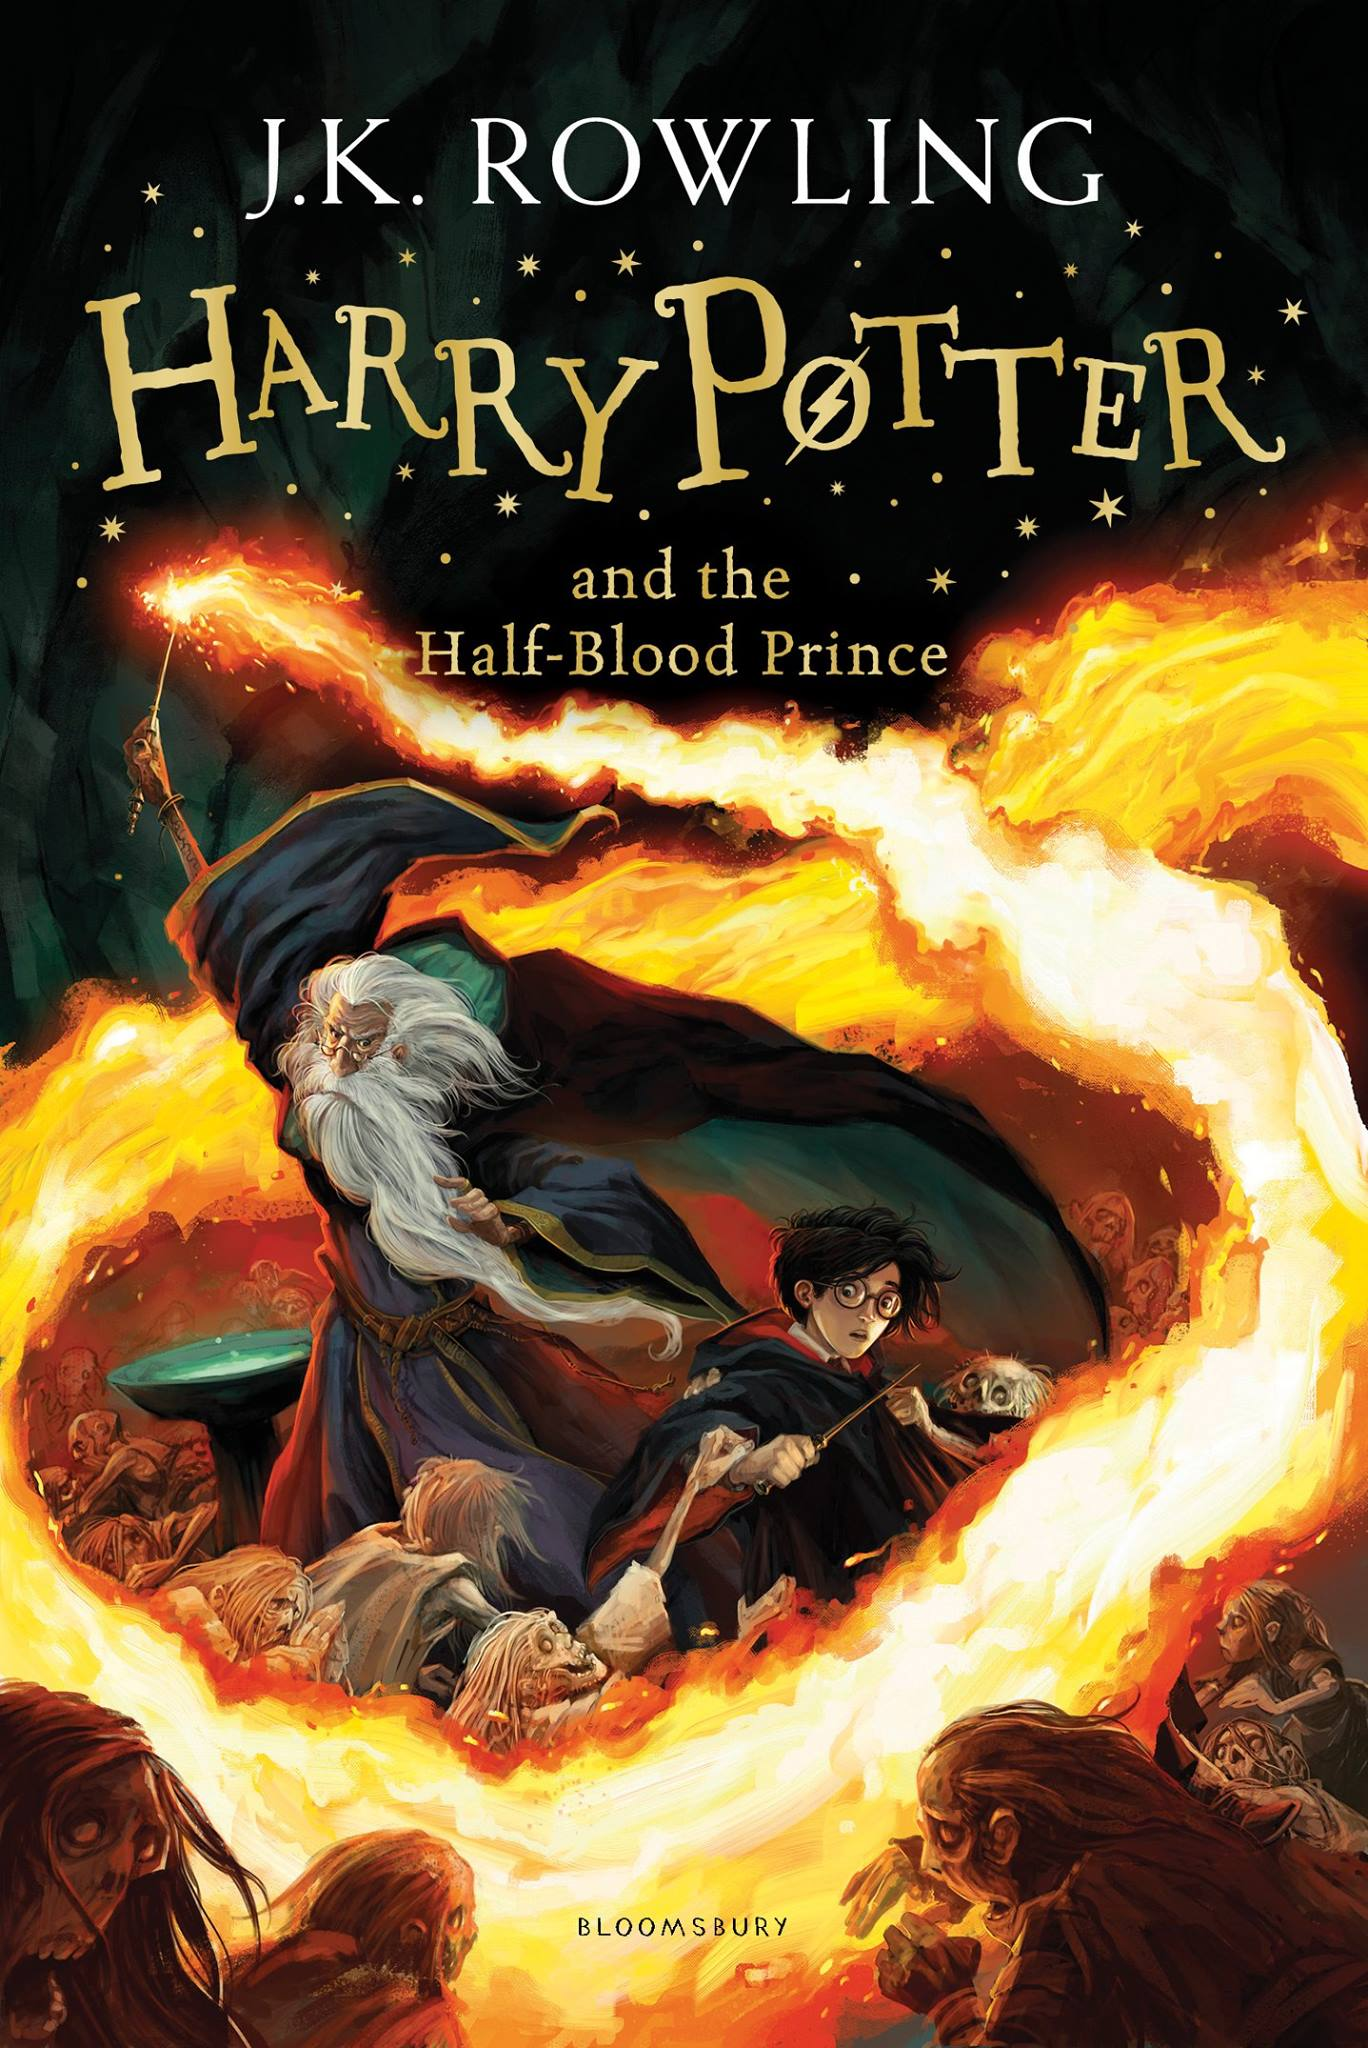 Книга на английском - Harry Potter, Book 6 of 7: Harry Potter and the Half-Blood Prince by Joanne K. Rowling - обложка книги скачать бесплатно